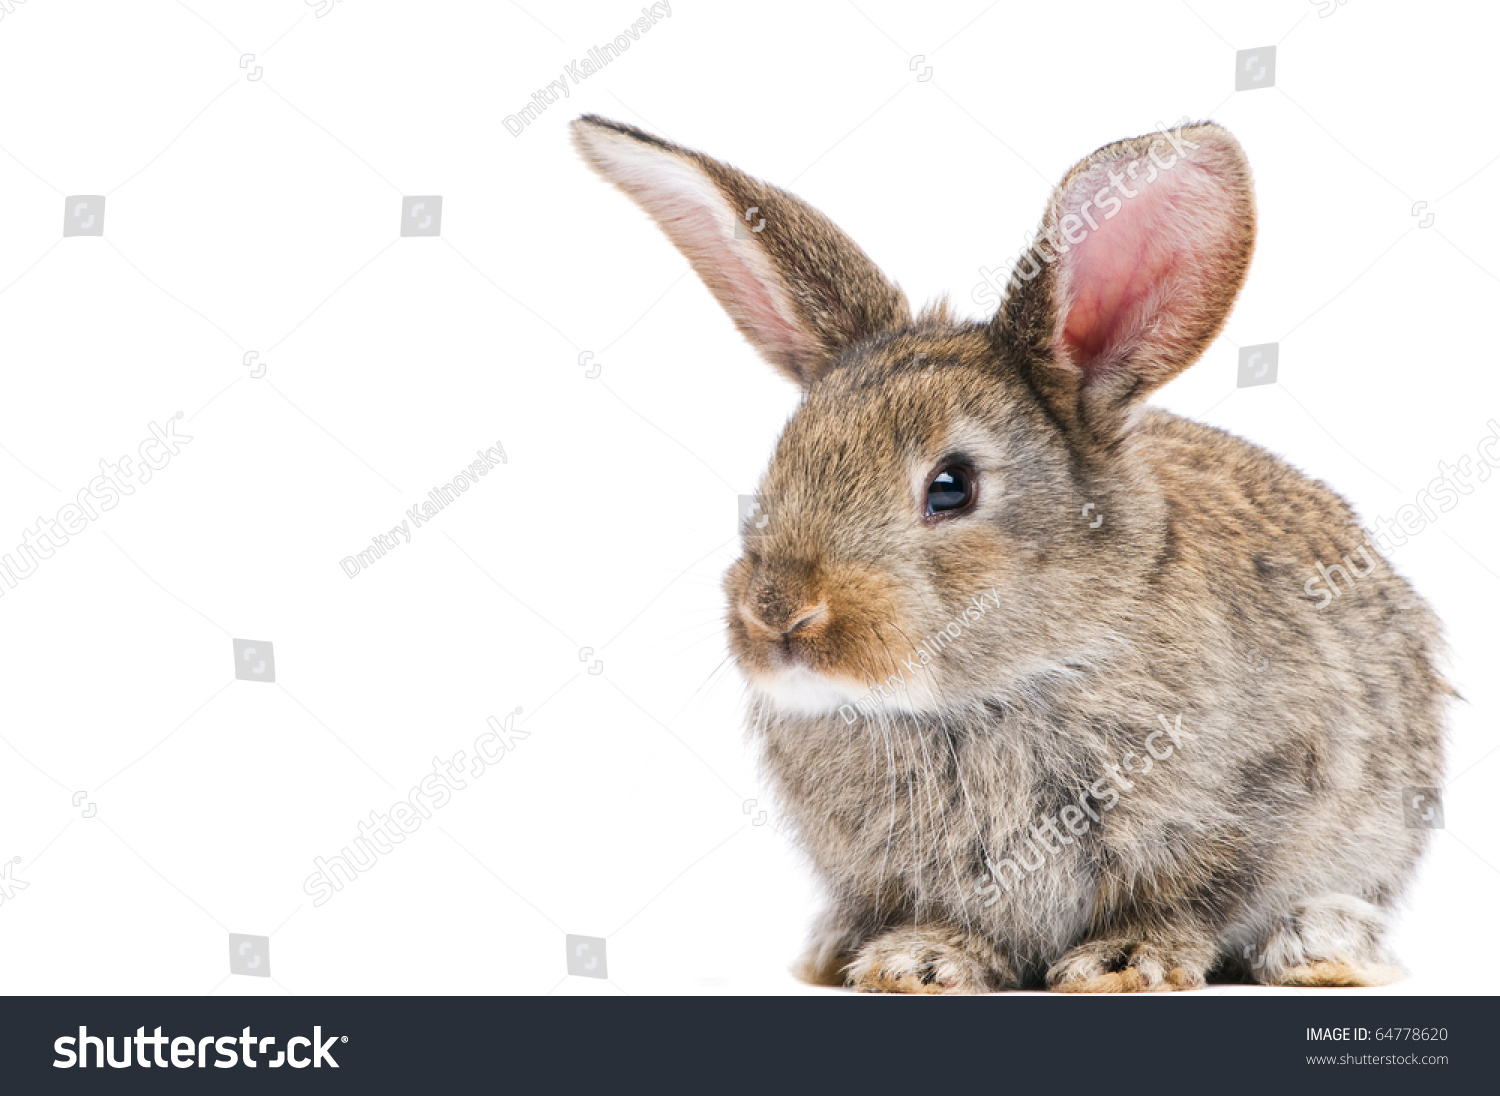 One Young Light Brown Rabbits With Long Ears Standing ...